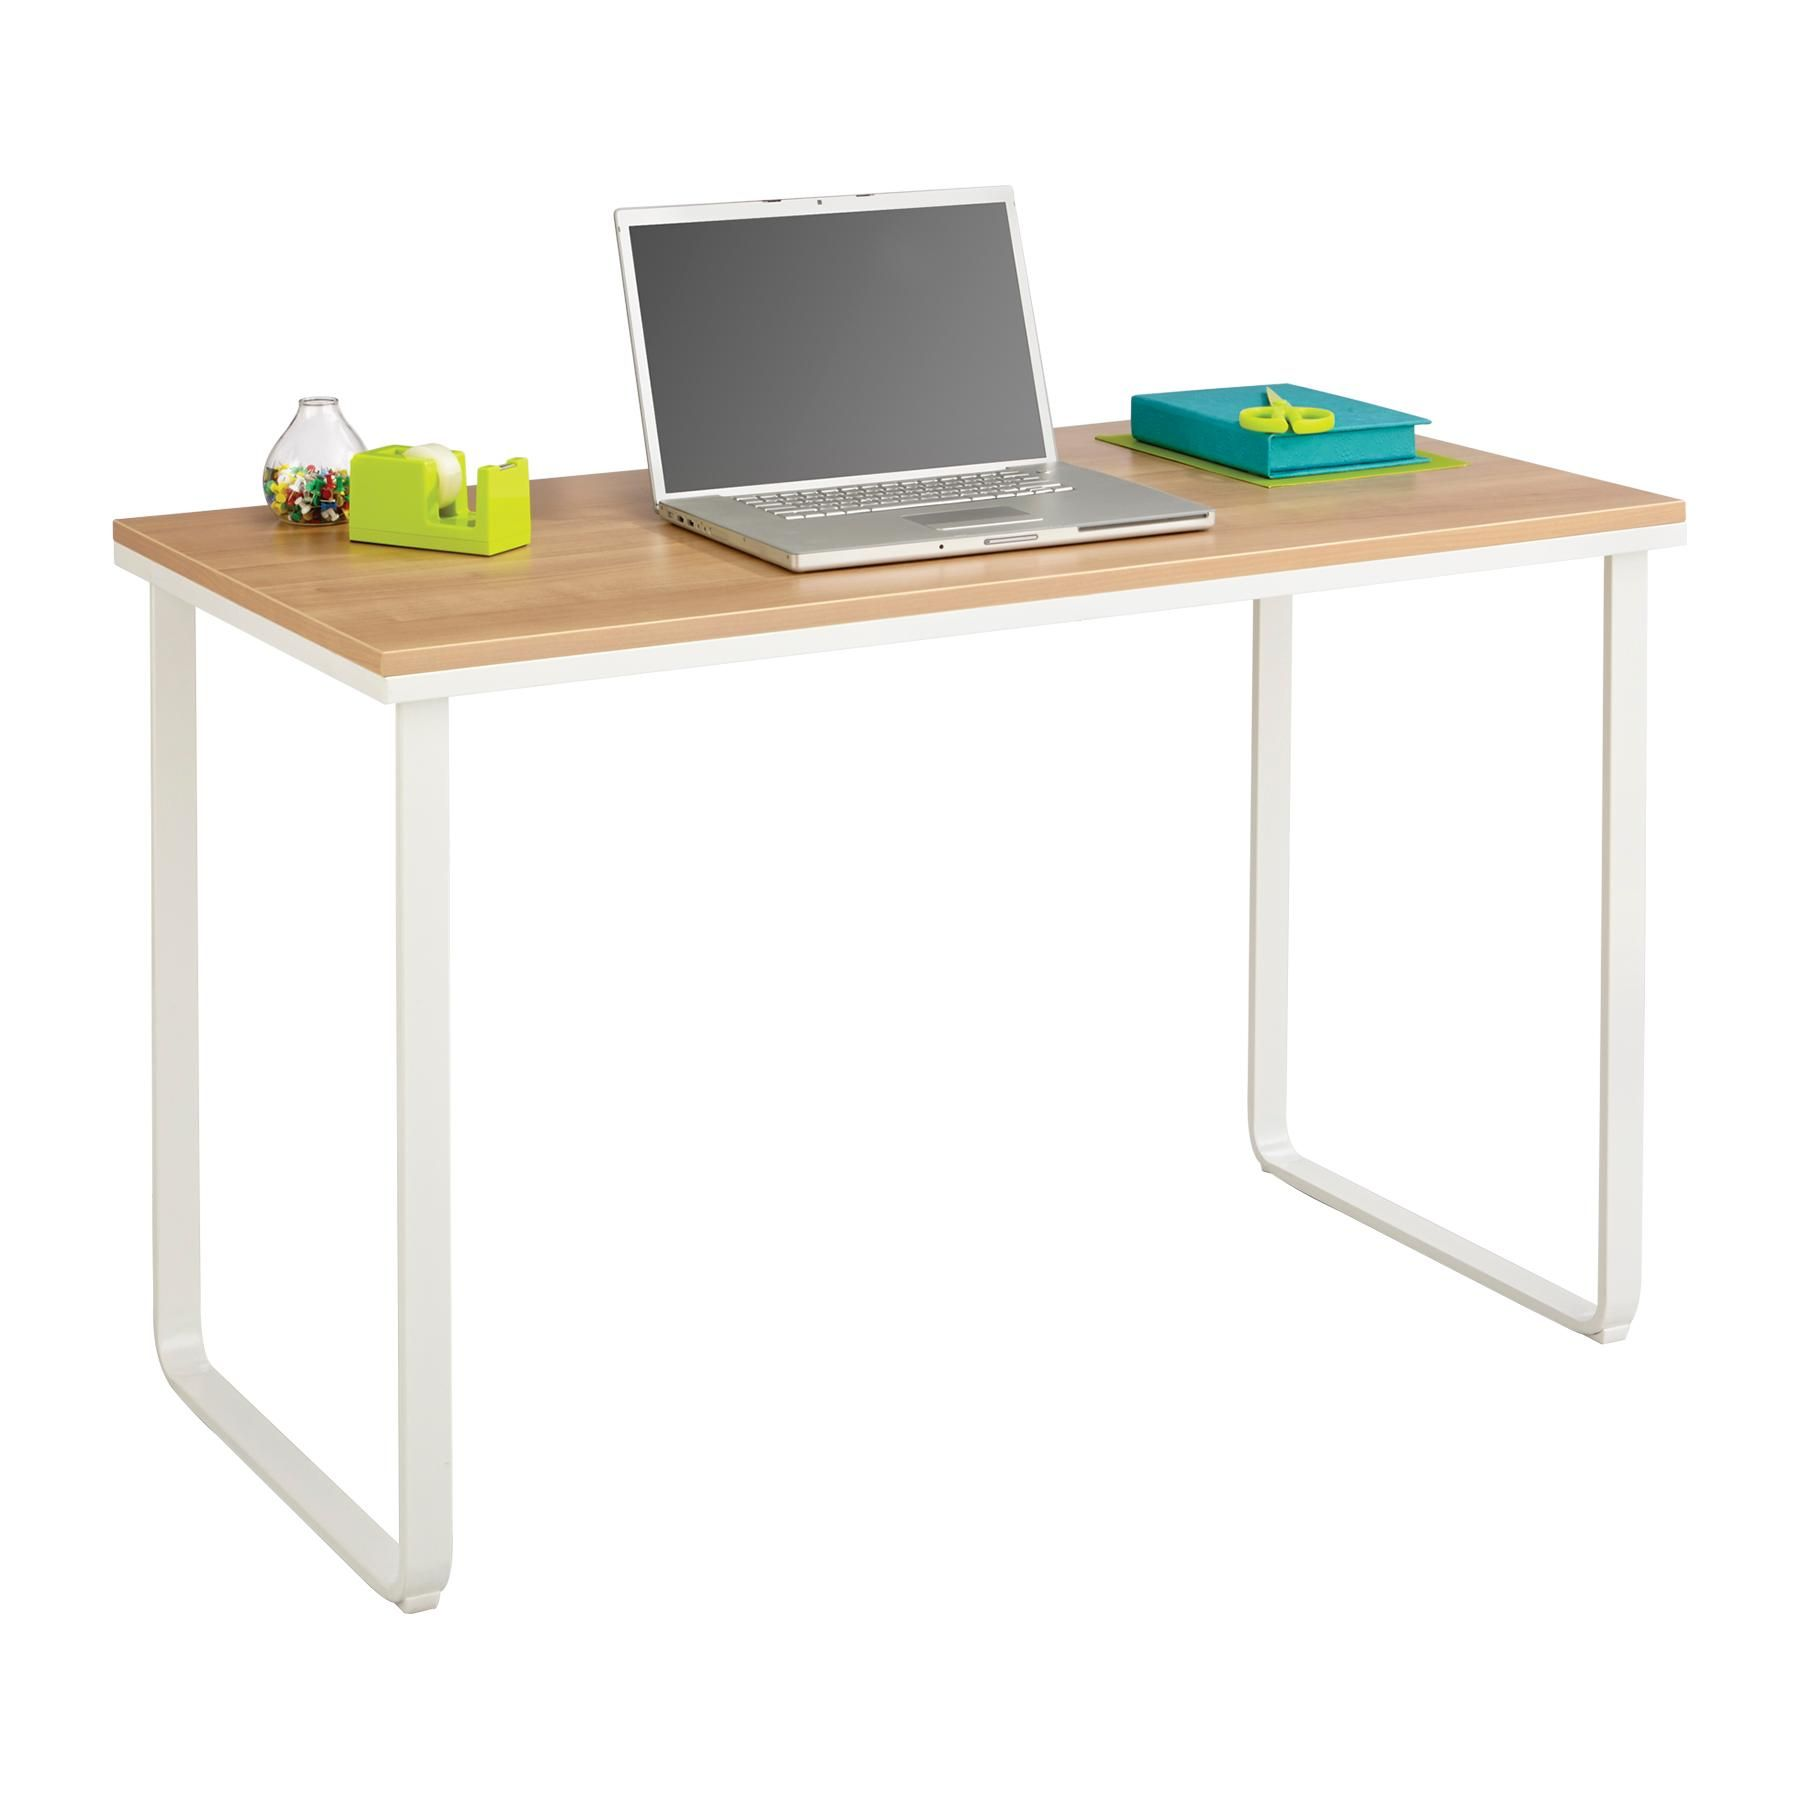 Desk Table Office Home Wood